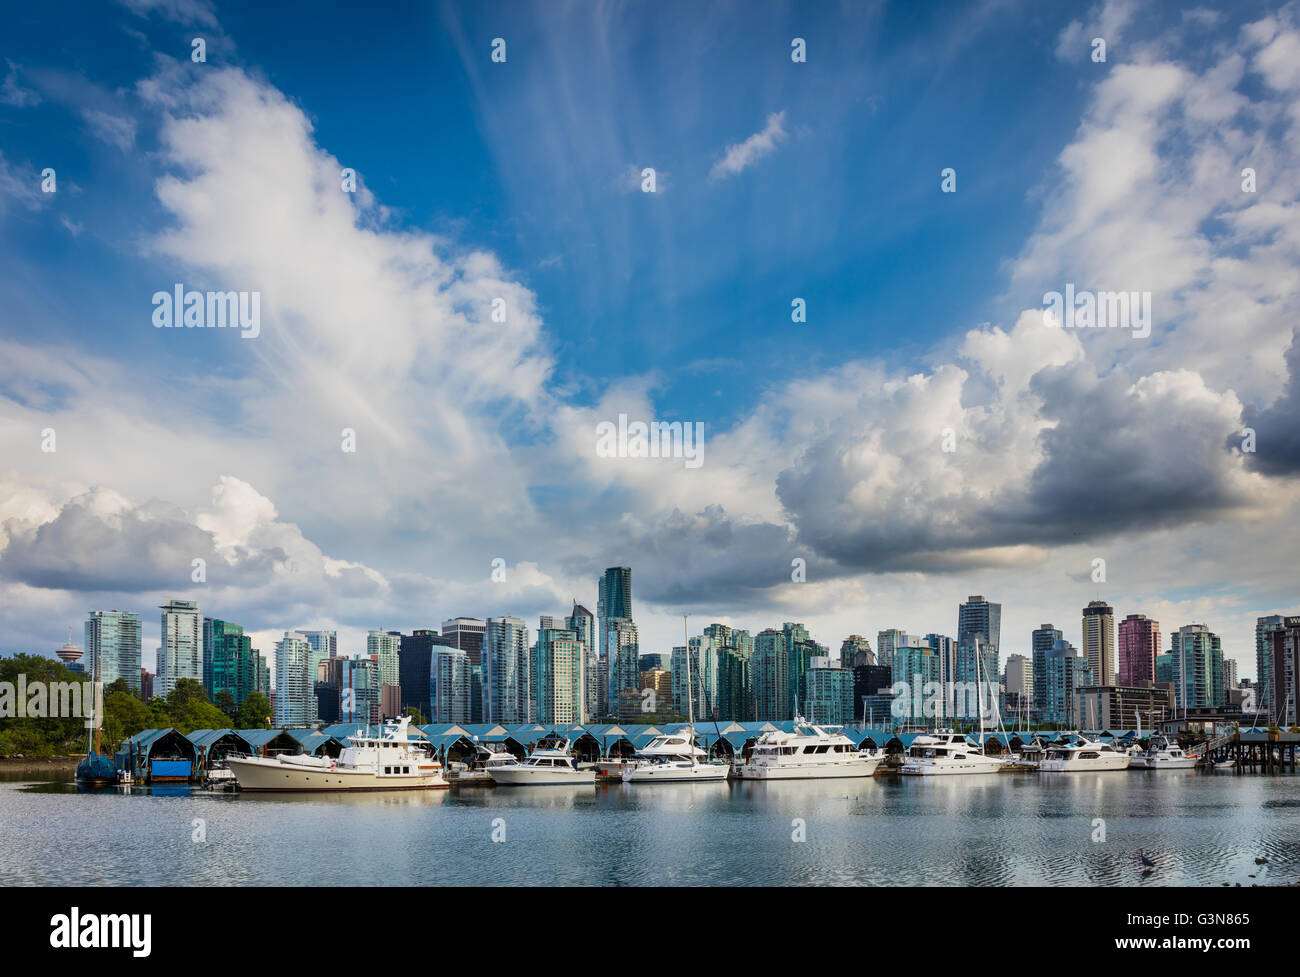 Vancouver is the most populous city in the Canadian province of British Columbia - Stock Image